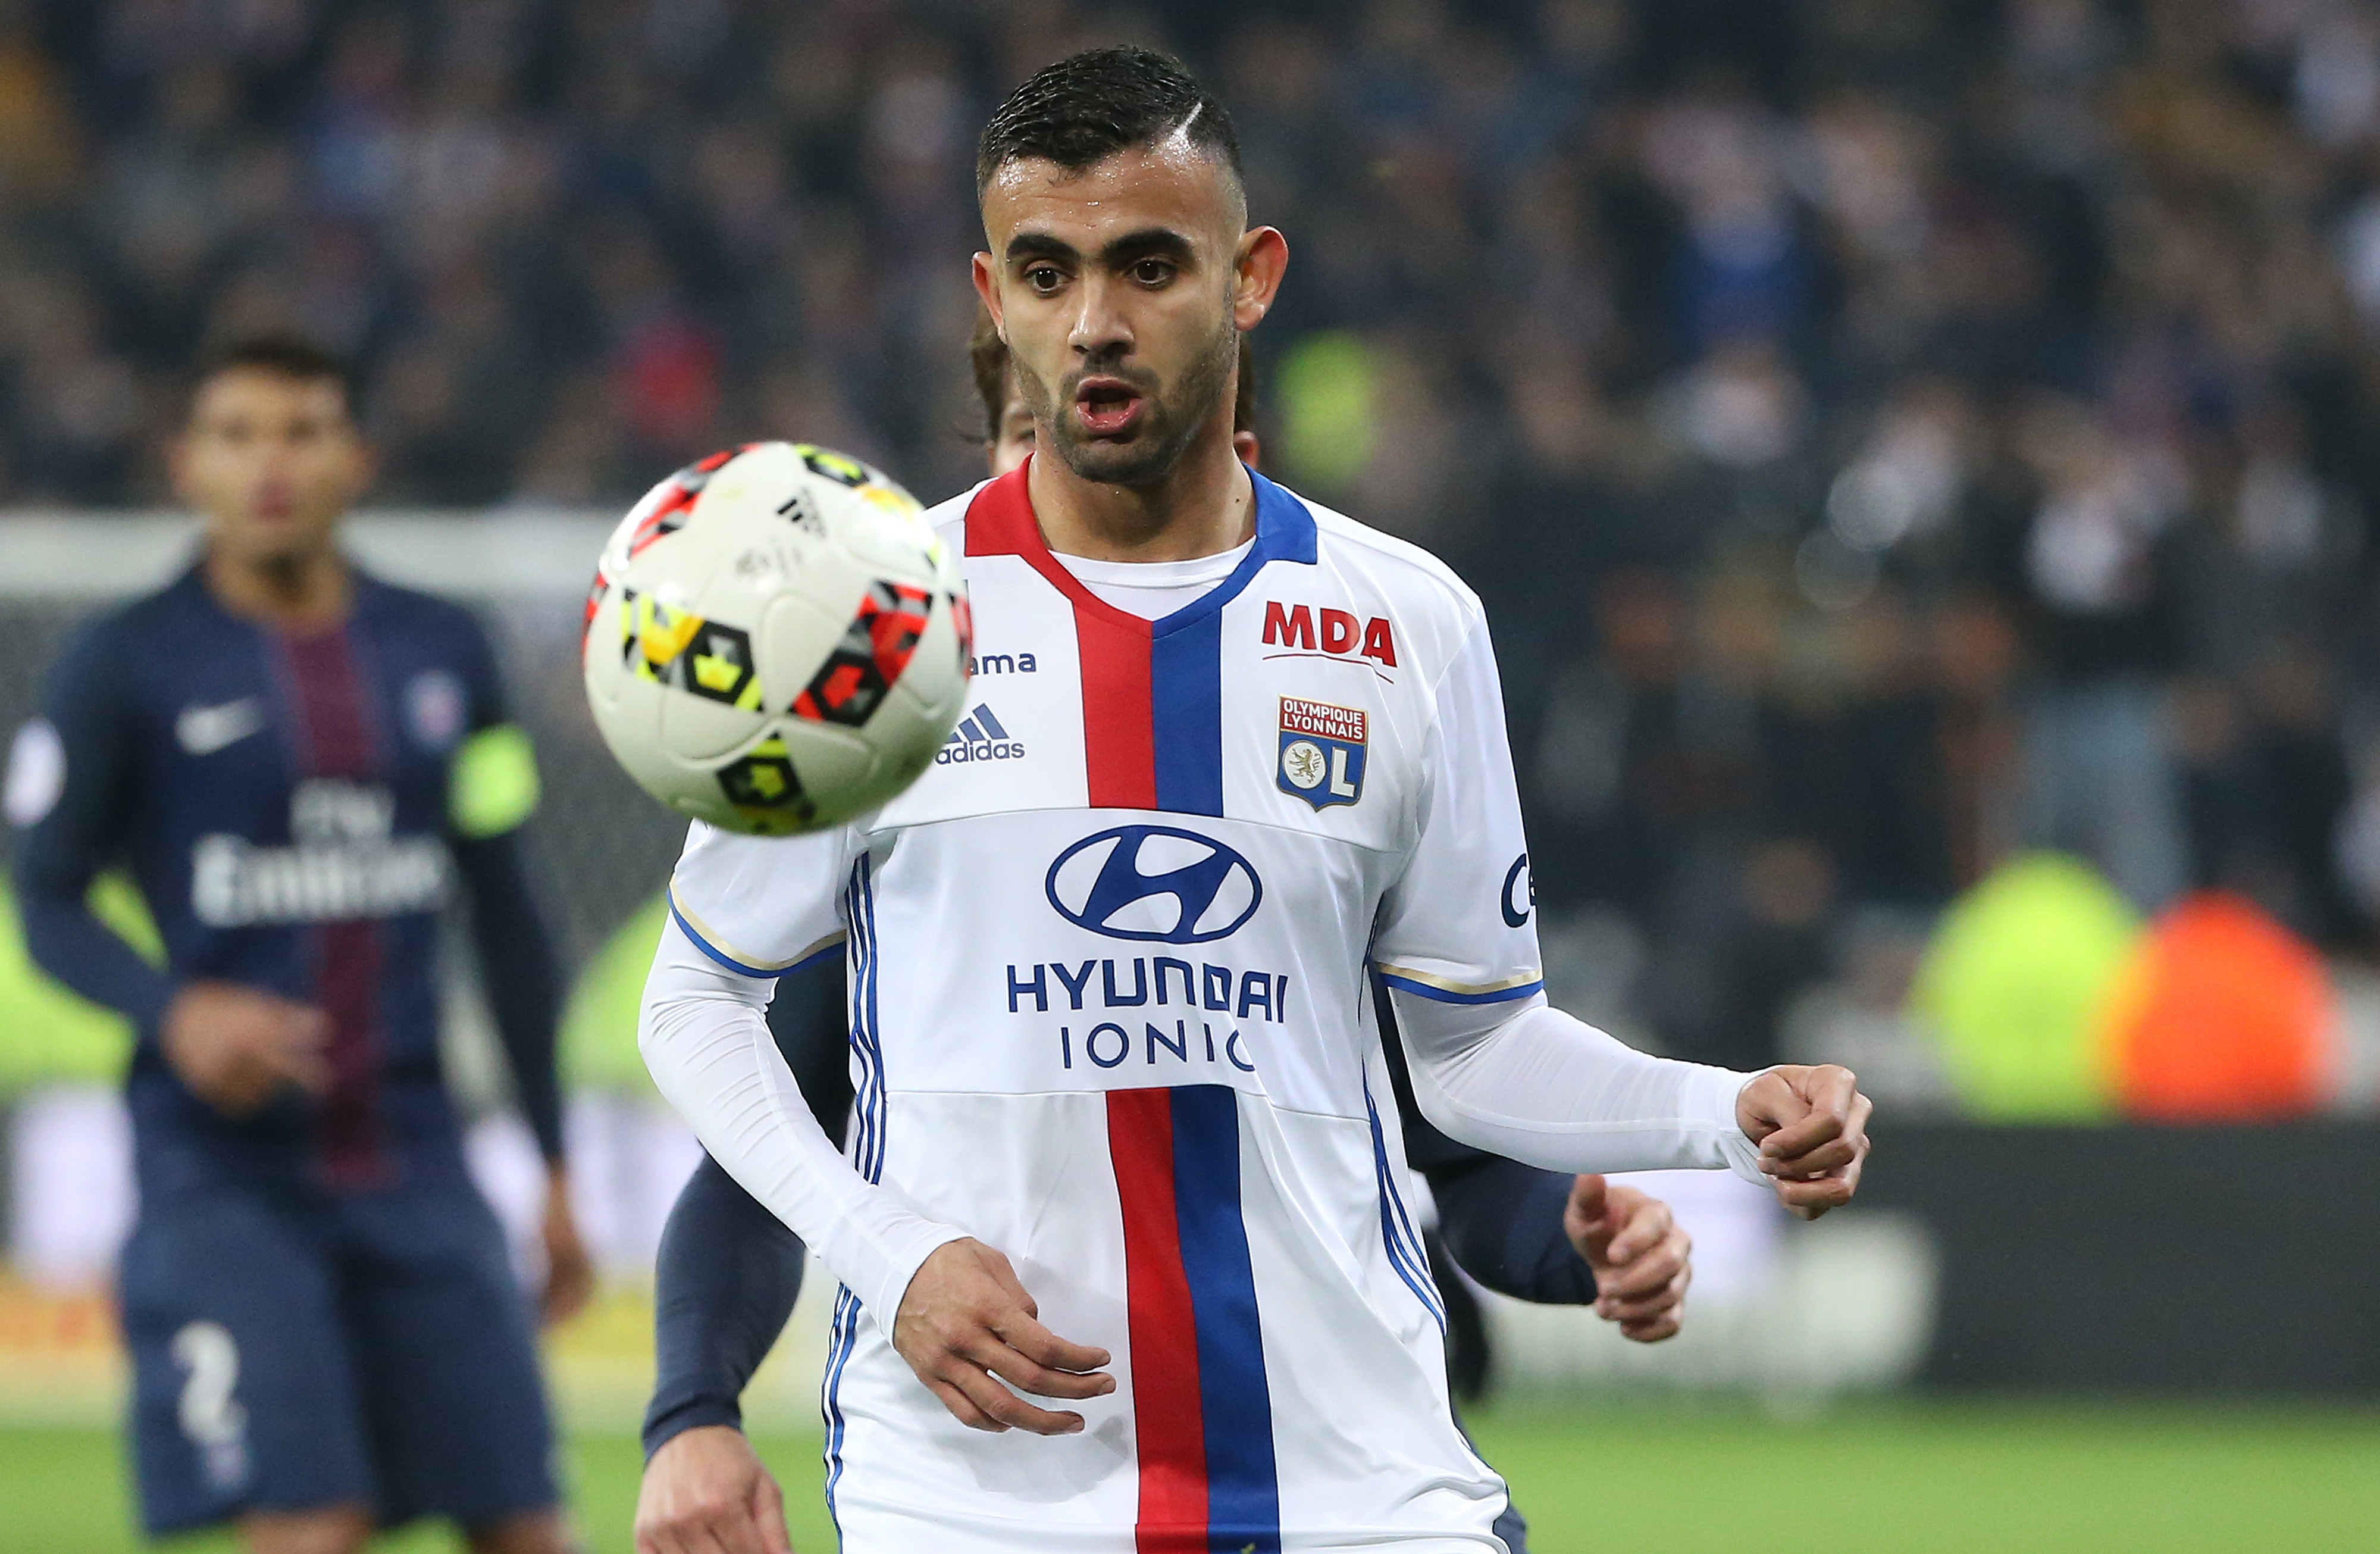 LYON, FRANCE - NOVEMBER 27: Rachid Ghezzal of Lyon in action during the French Ligue 1 match between Olympique Lyonnais (OL) and Paris Saint-Germain (PSG) at Parc OL stadium on November 27, 2016 in Decines near Lyon, France. (Photo by Jean Catuffe/Getty Images)